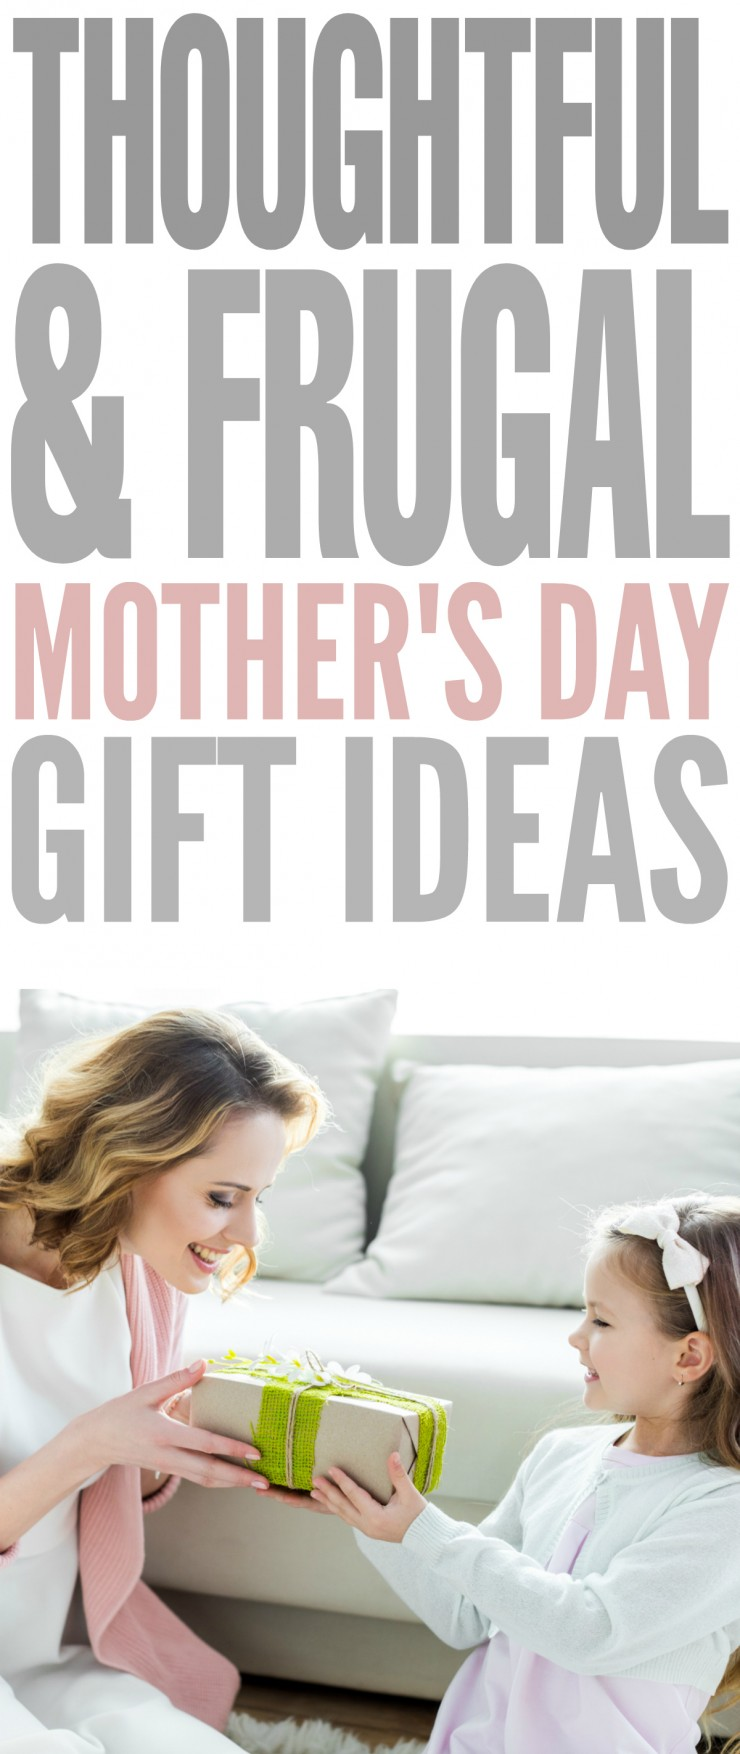 While a classic bouquet of flowers is thoughtful, there are other thoughtful and frugal Mother's Day gift ideas out there that will really show her how important she is to you.